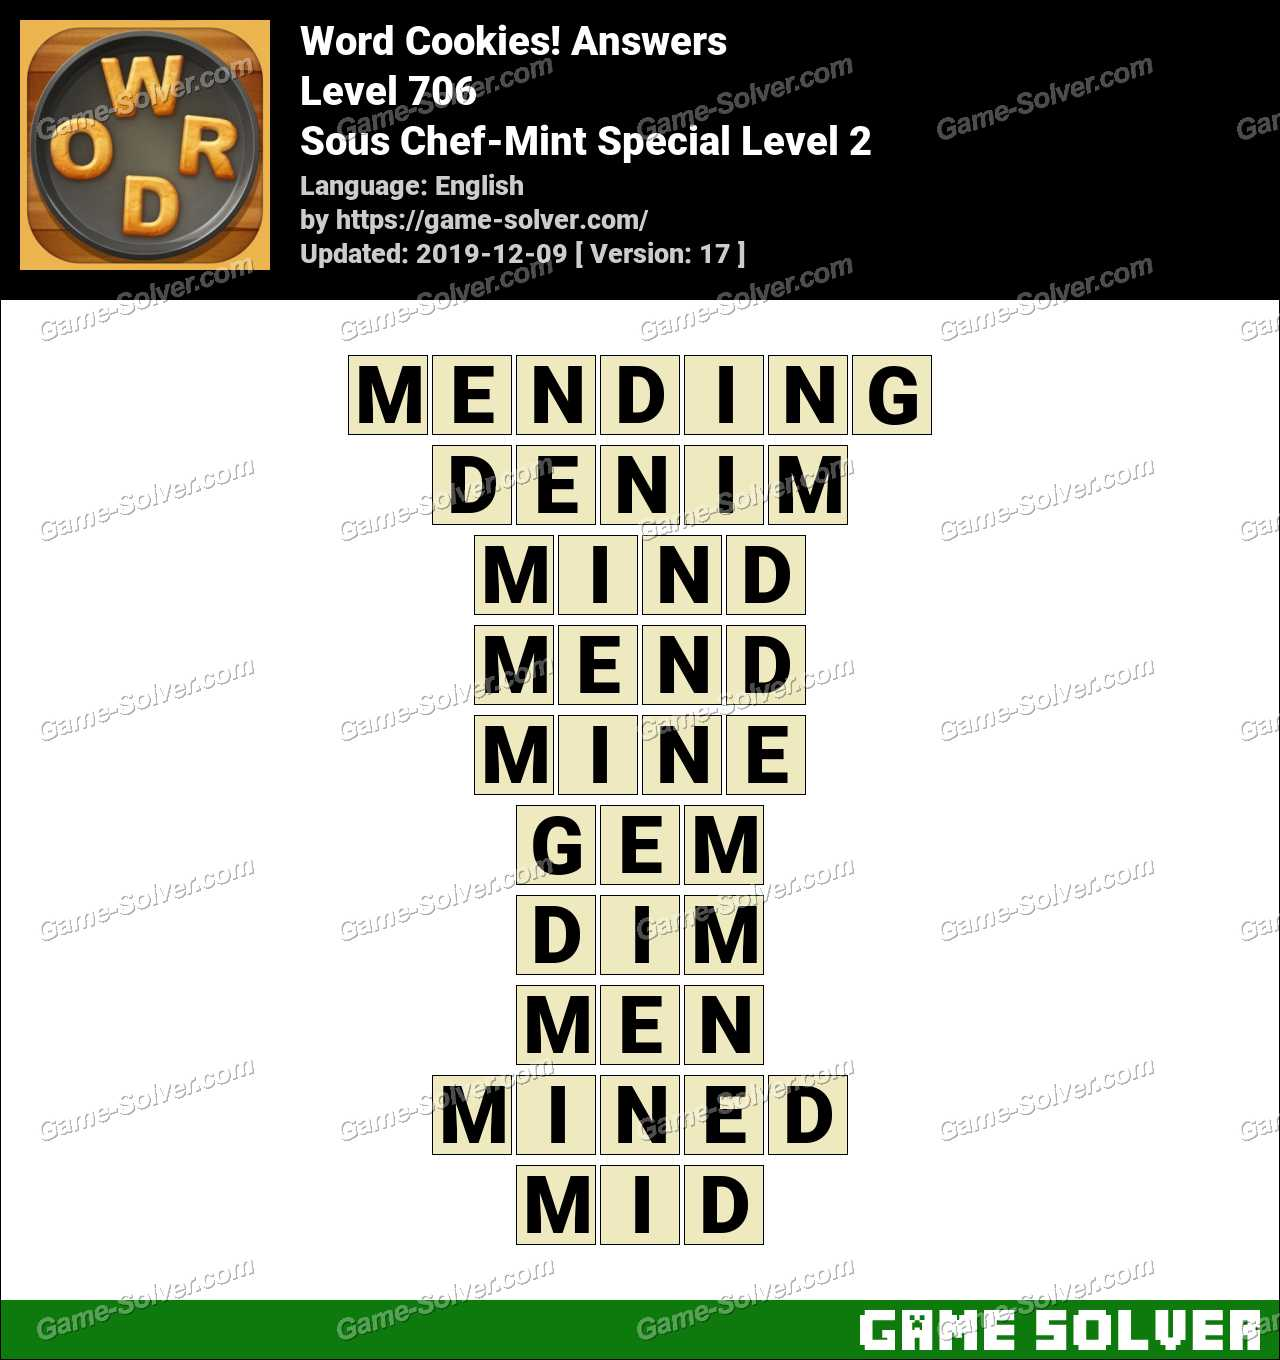 Word Cookies Sous Chef-Mint Special Level 2 Answers